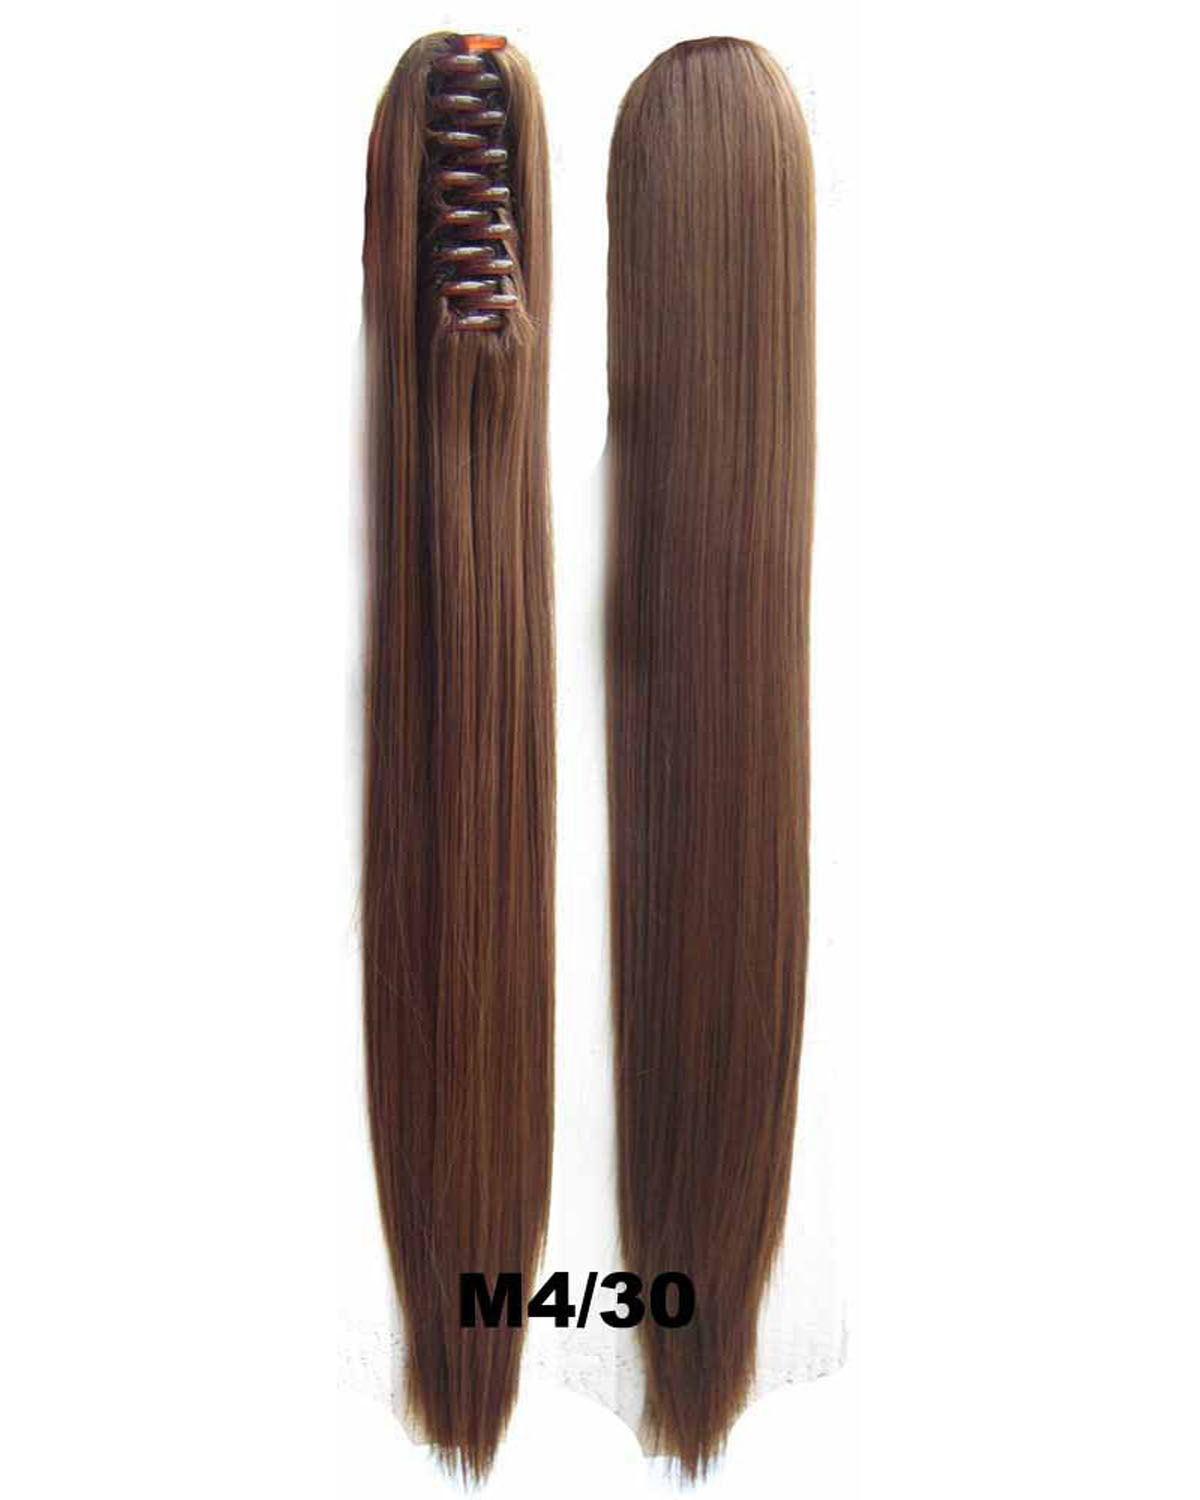 22 Inch Lady Straight and Long Claw Chip Synthetic Hair Ponytail M4/30 New and Popular